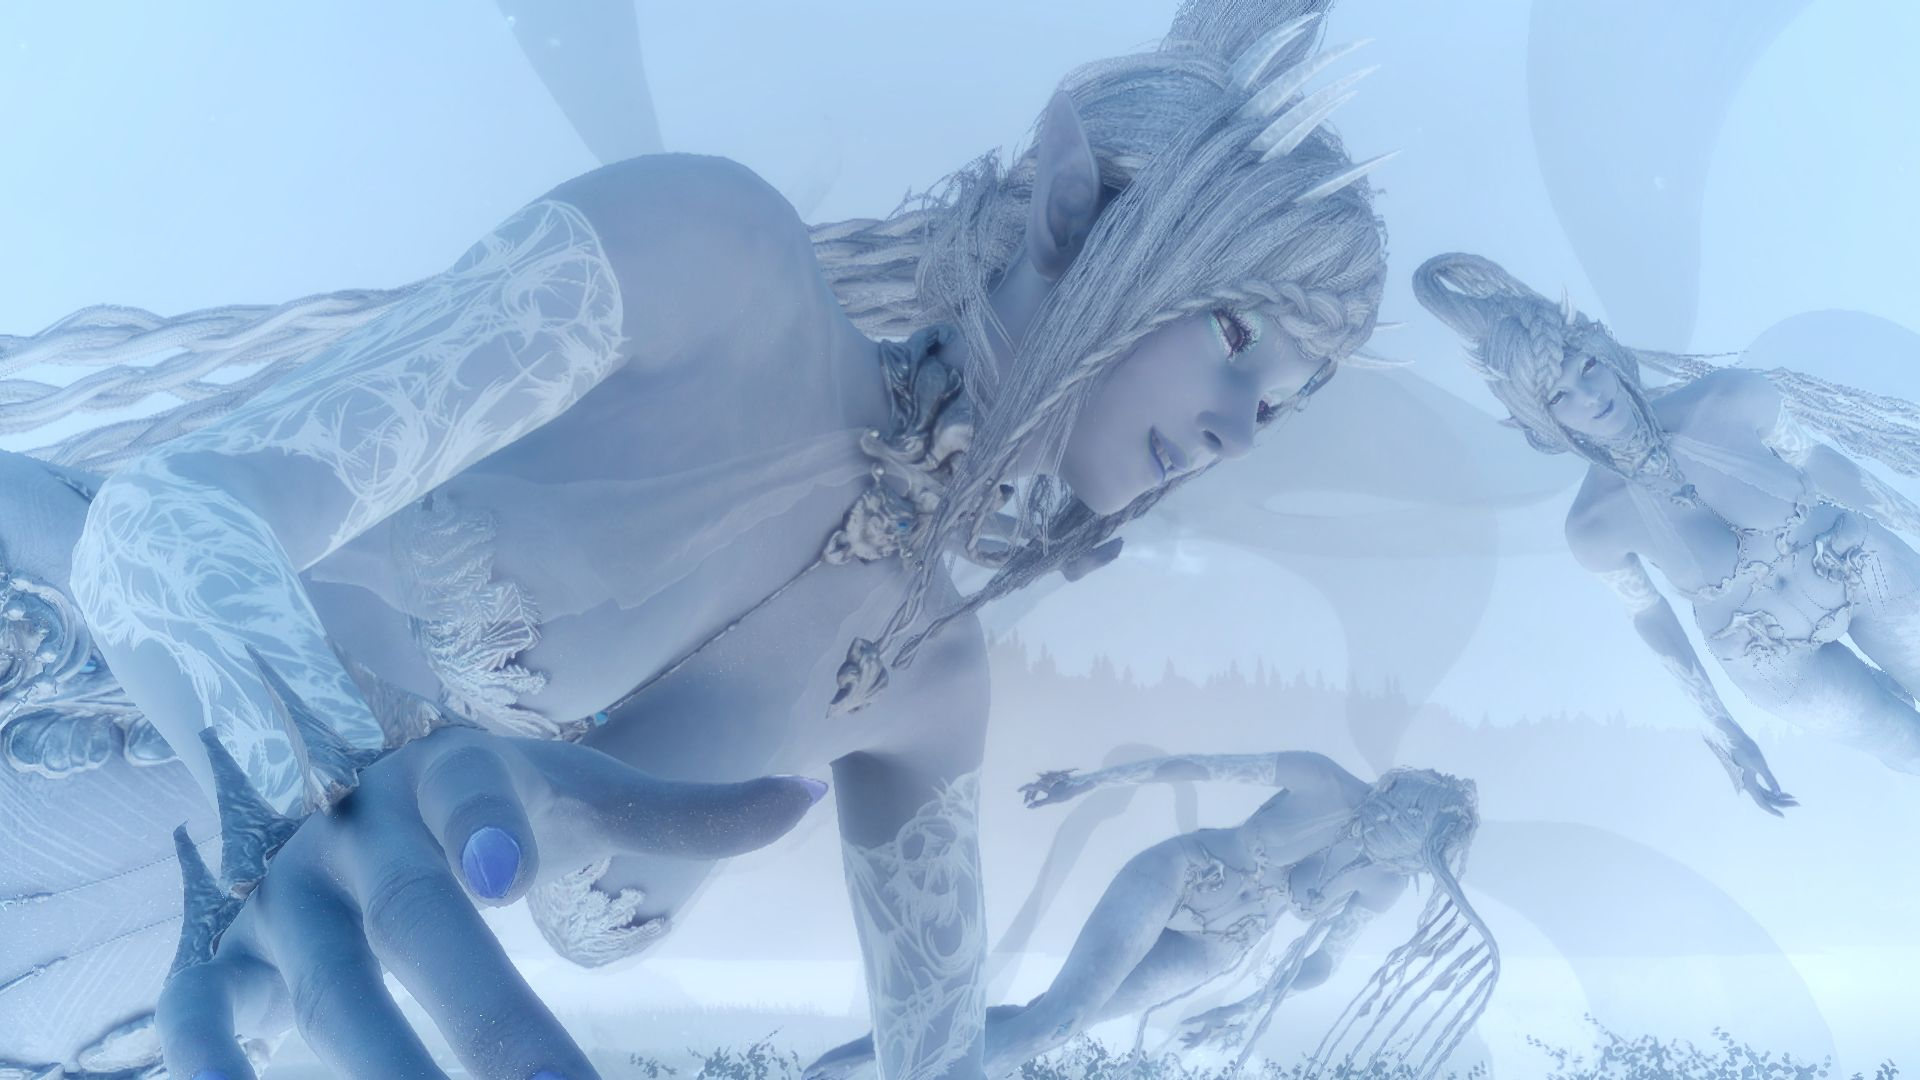 Final Fantasy XV's First Story DLC Will See The Return Of Classic